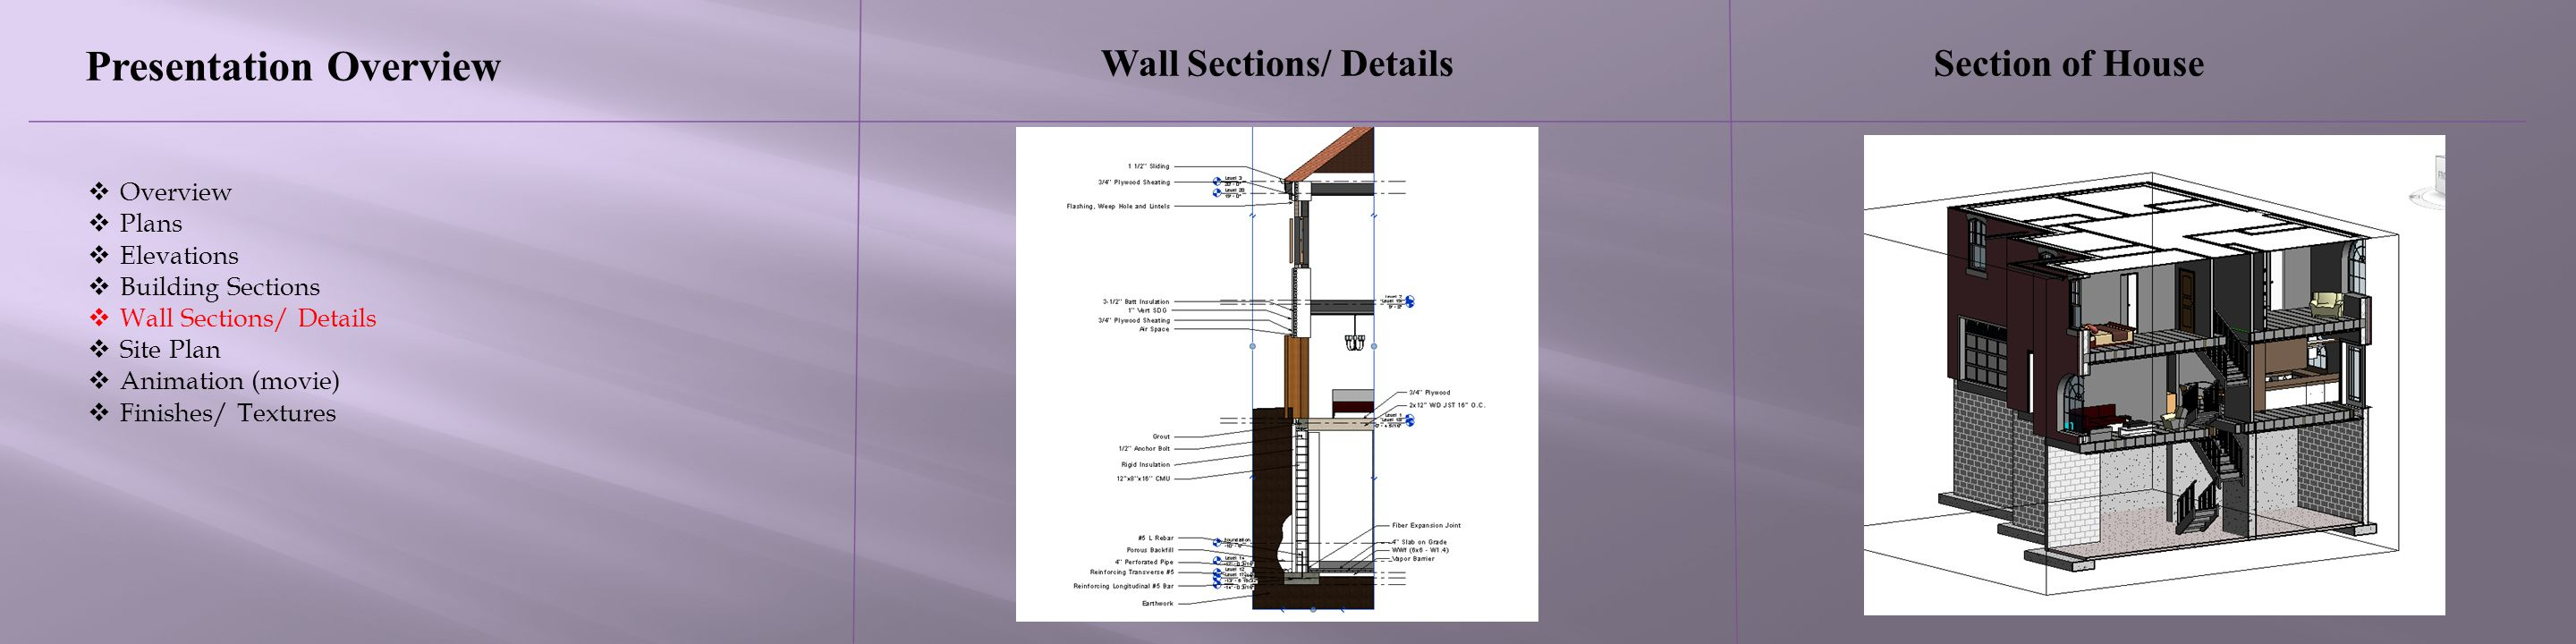 Wall Sections/ Details